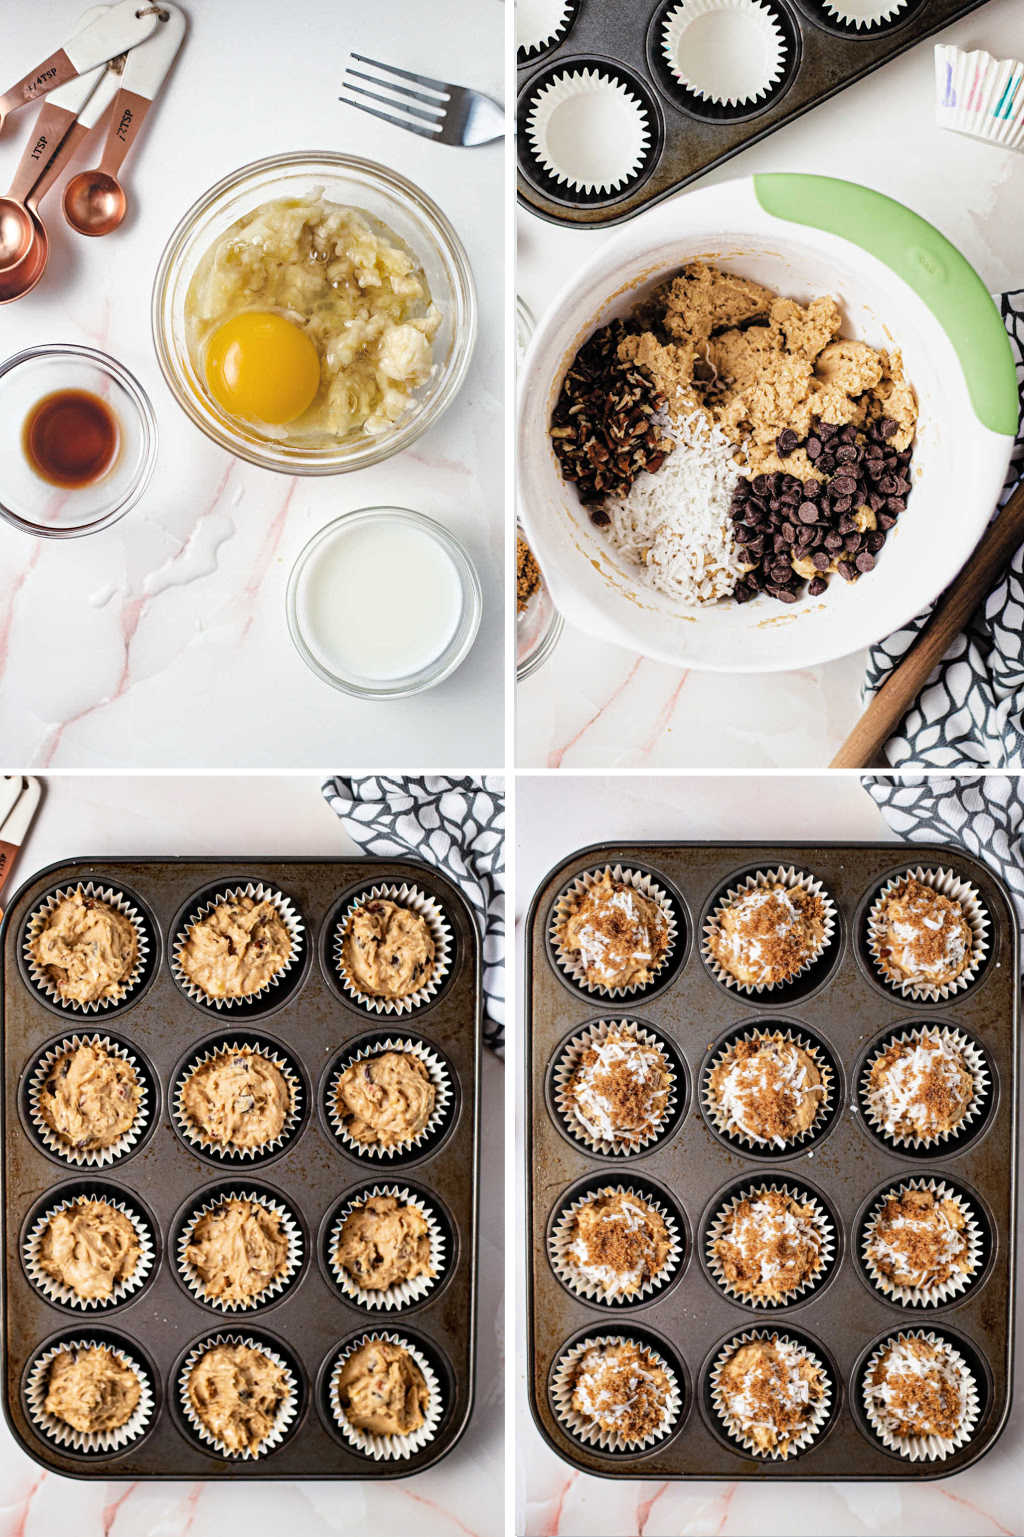 process steps for making vinaigrette for chocolatey coconut banana muffins.